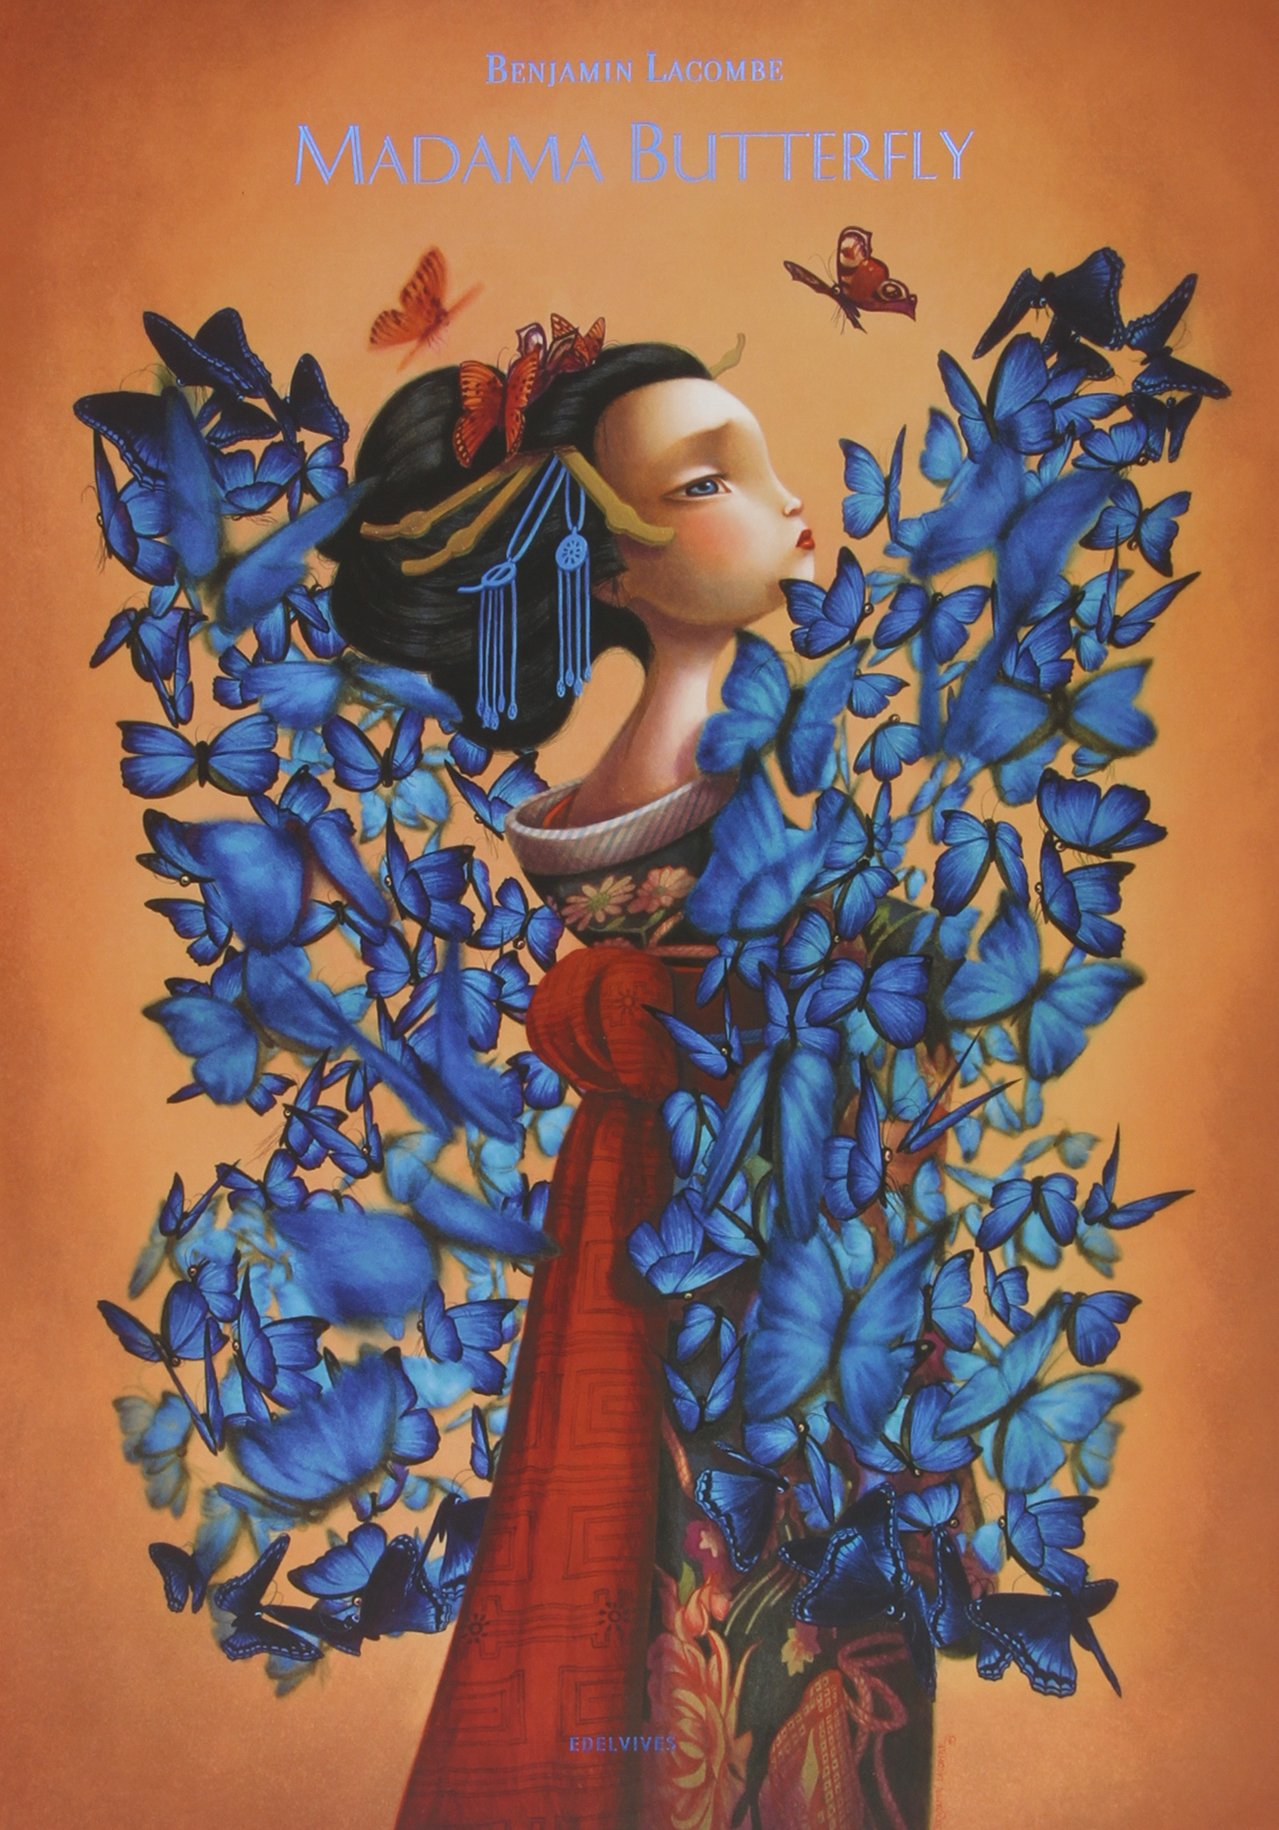 Madama Butterfly: Amazon.es: Benjamin Lacombe, Elena Gallo ...